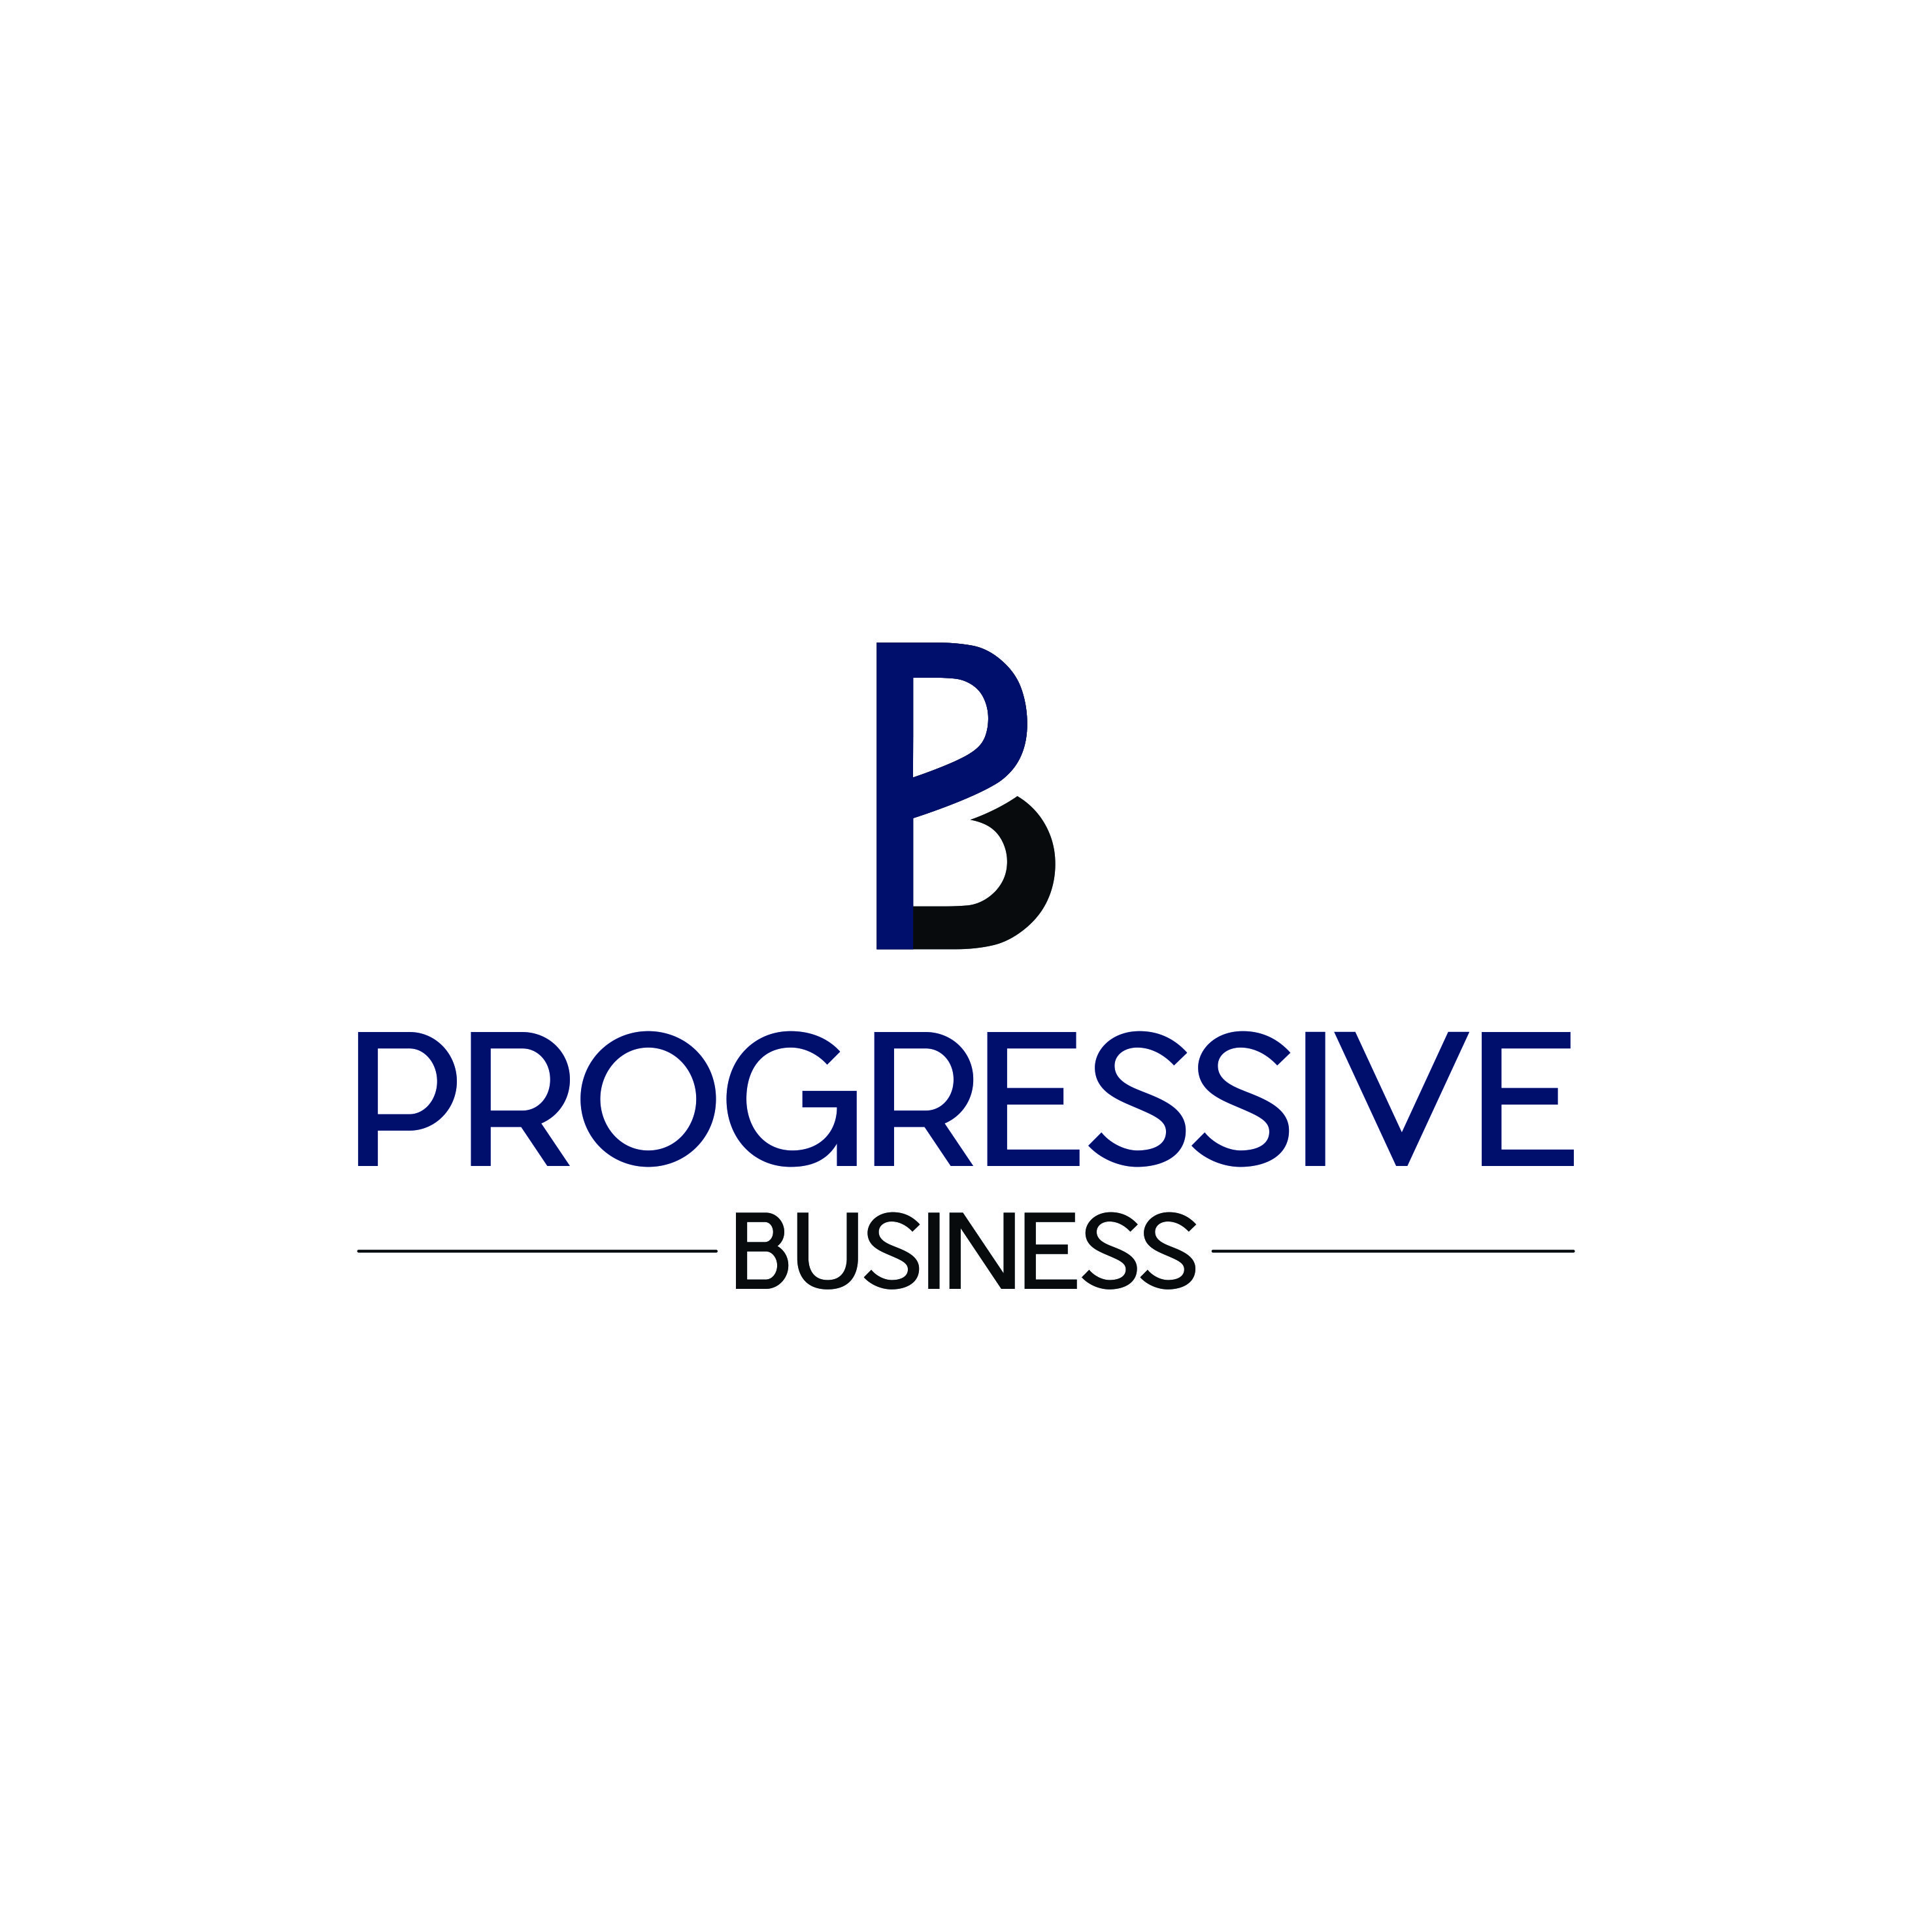 Logo Design by AlkalineDesign - Entry No. 172 in the Logo Design Contest Captivating Logo Design for Progressive Business.